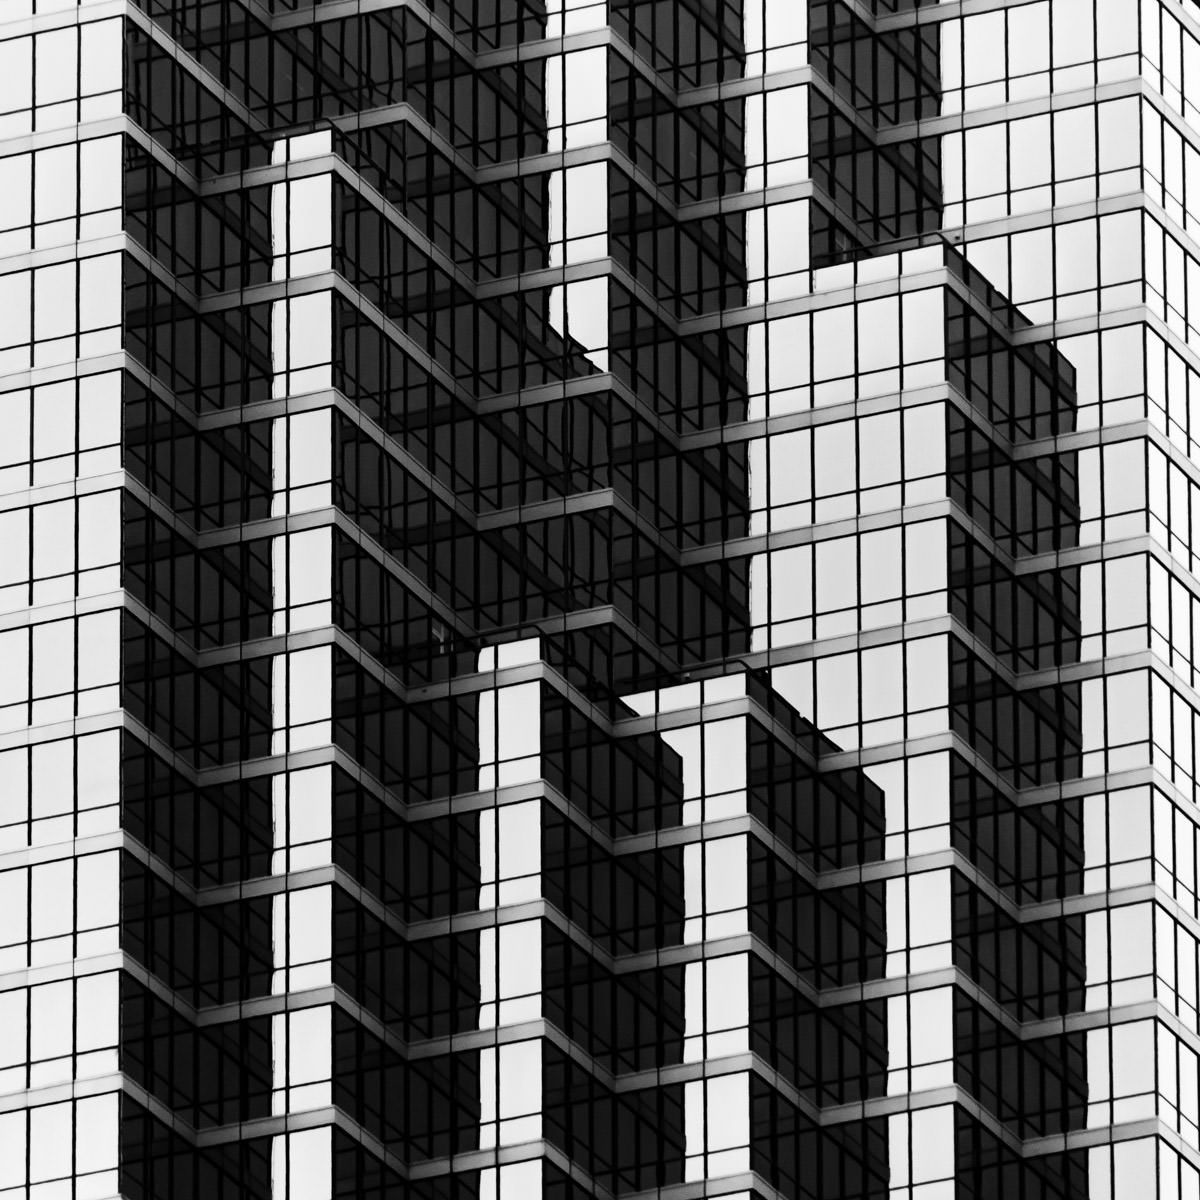 Architectural detail of Dallas' tallest building, the Bank of America Plaza.